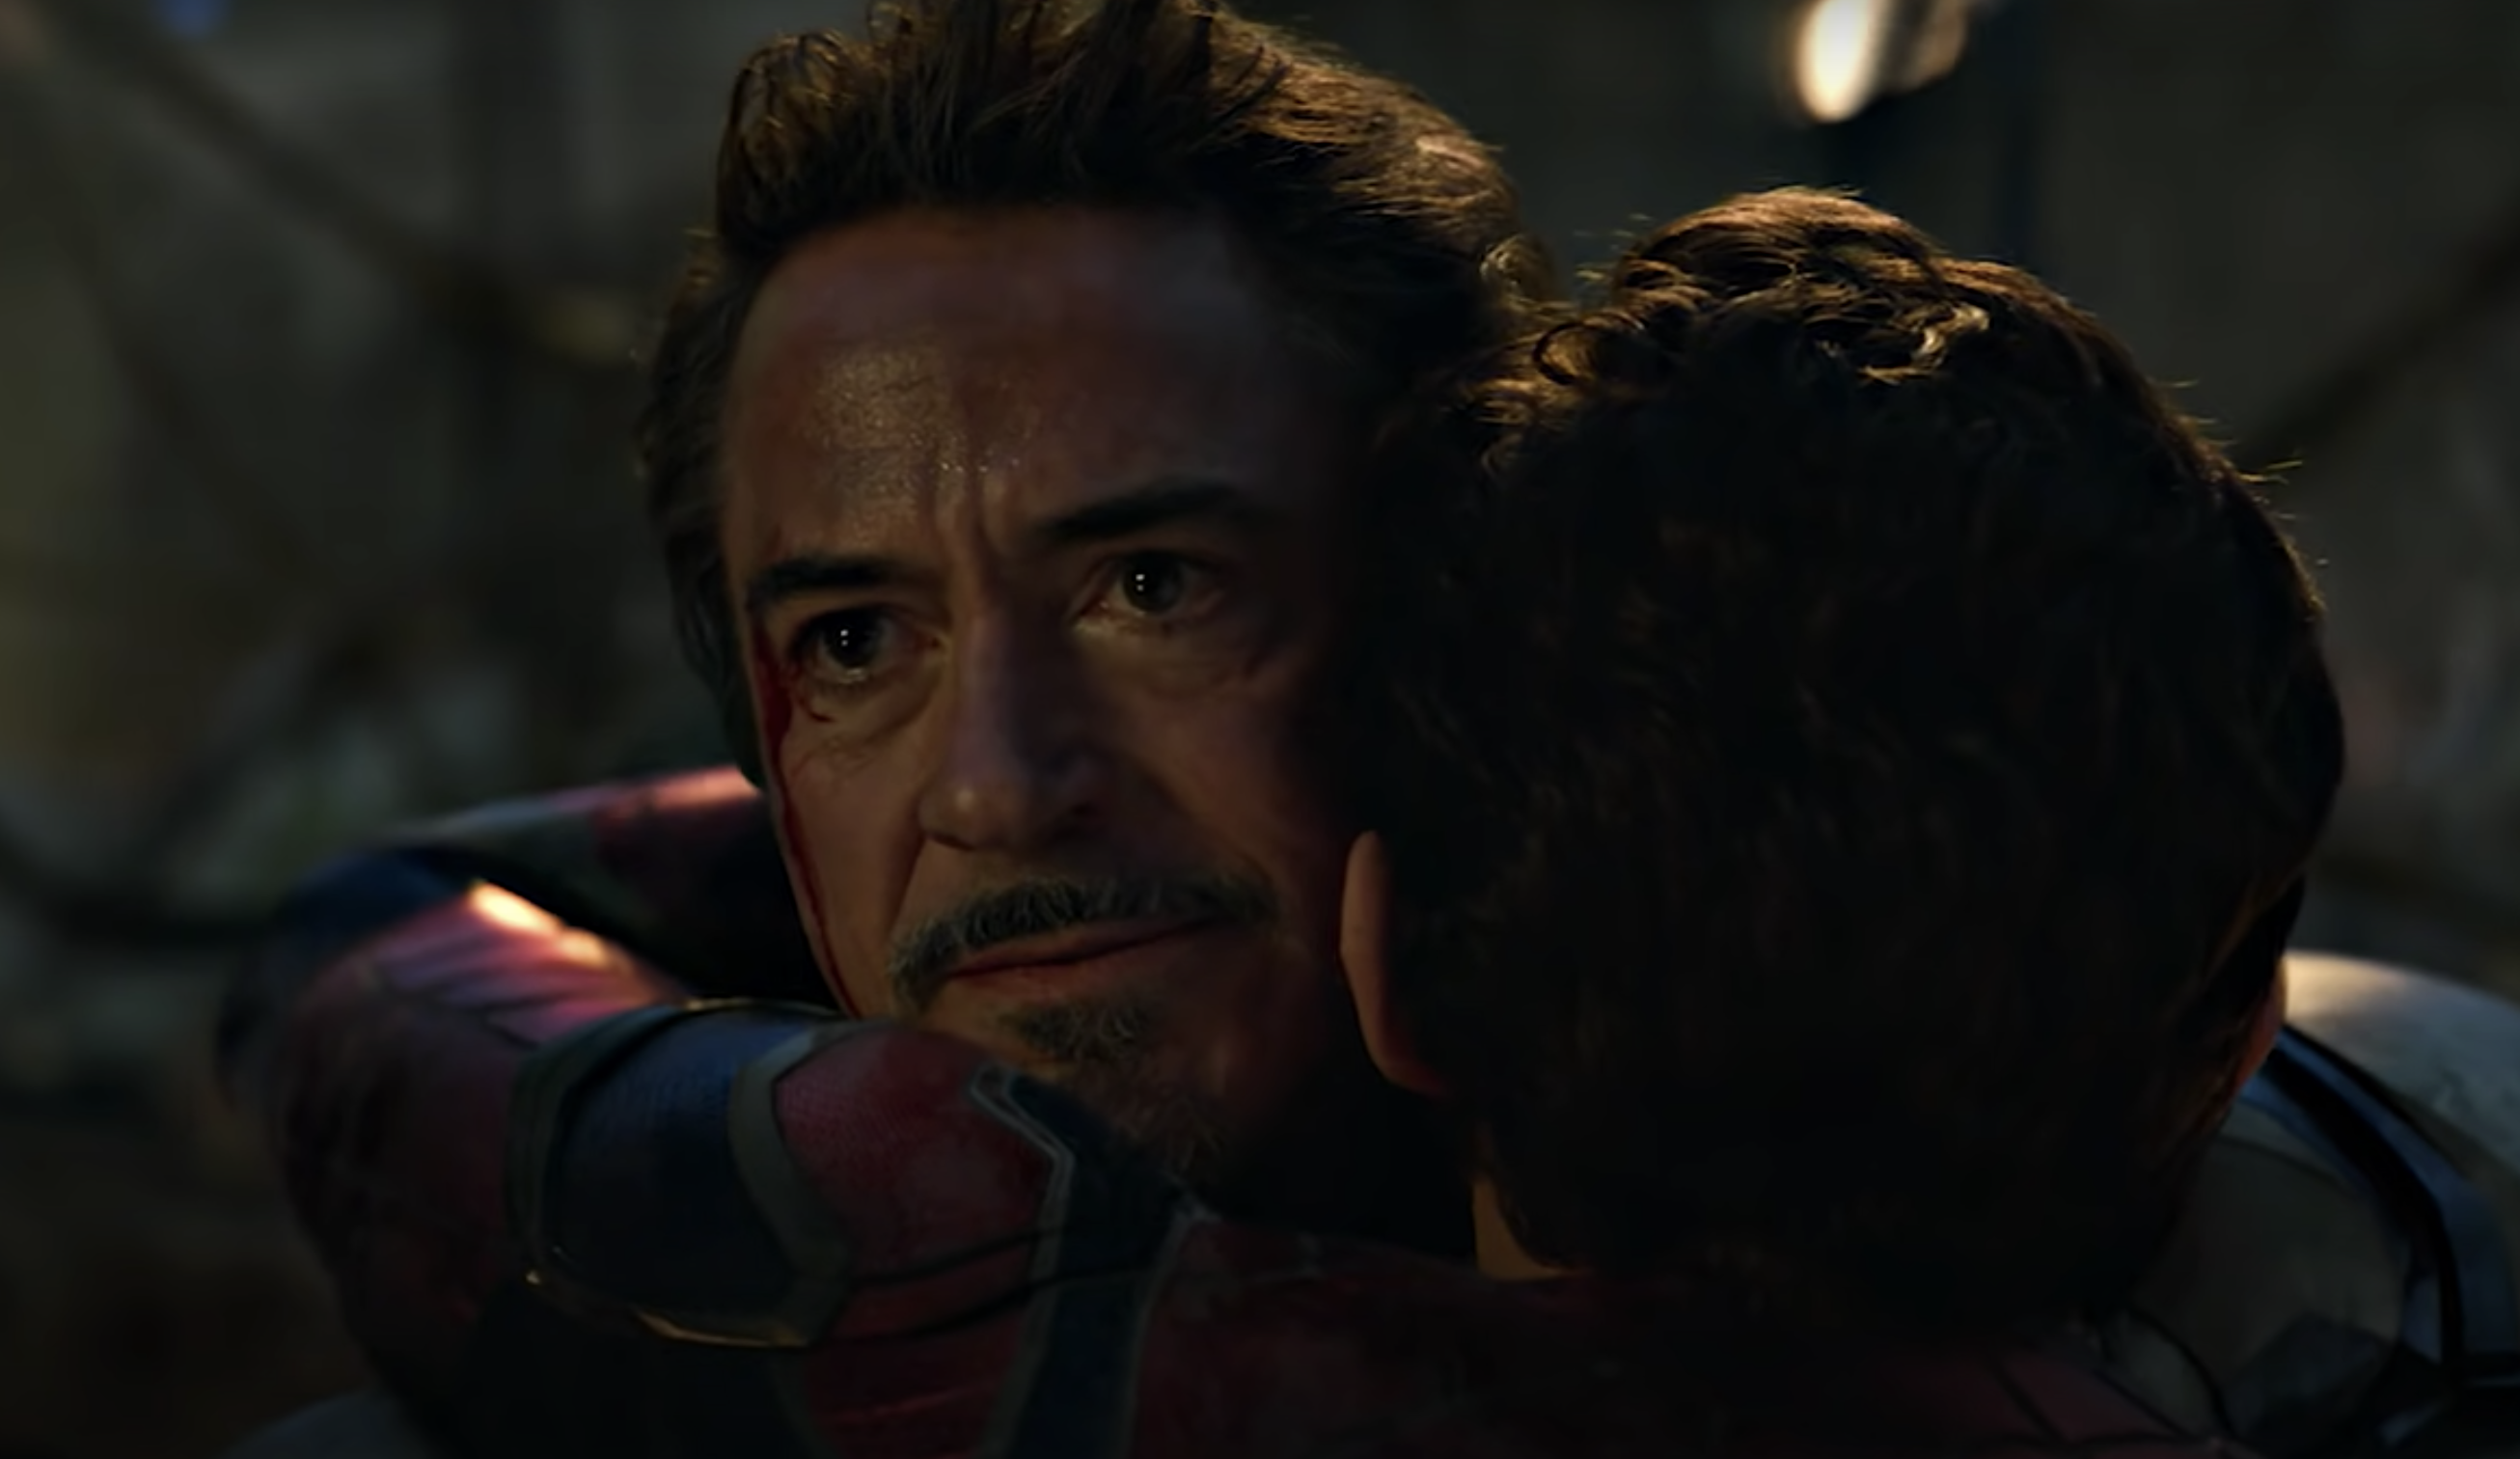 Tony Stark hugging Peter in the middle of the battle